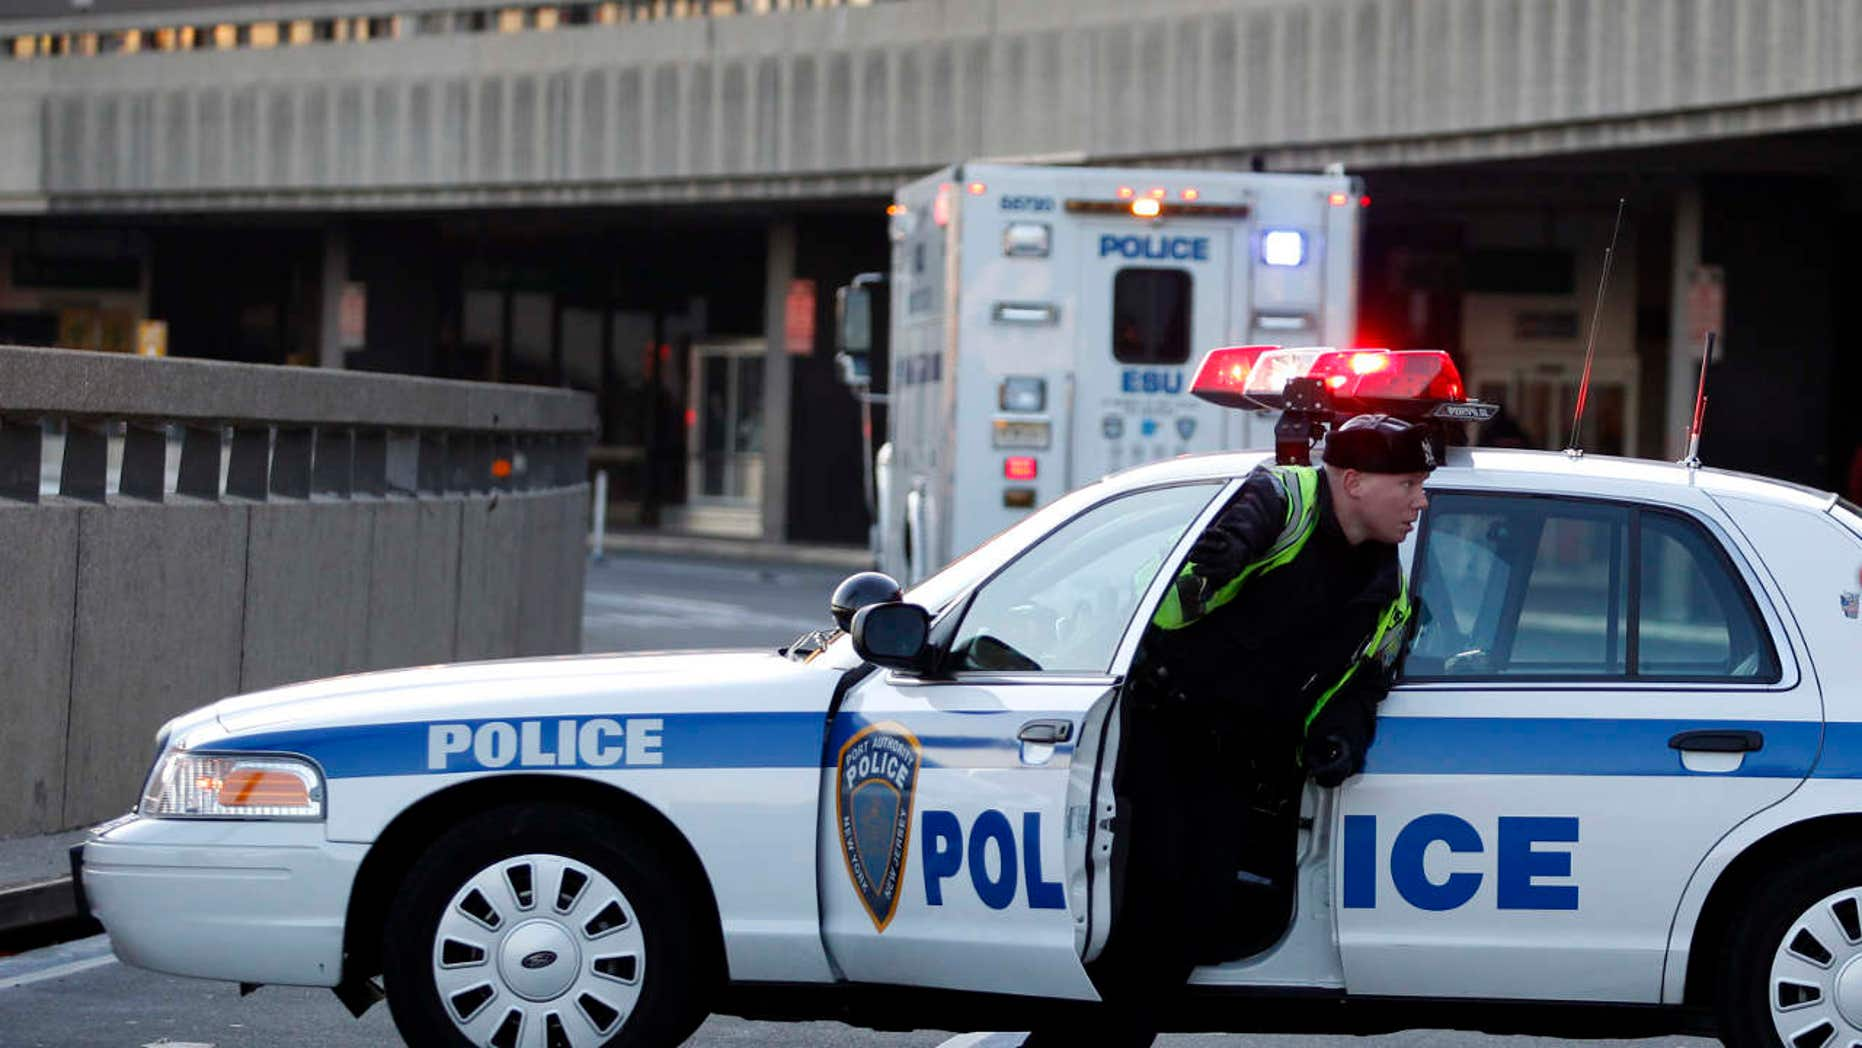 Part of Terminal A at Newark International Airport was evacuated Saturday after a pressure cooker was discovered, police said.